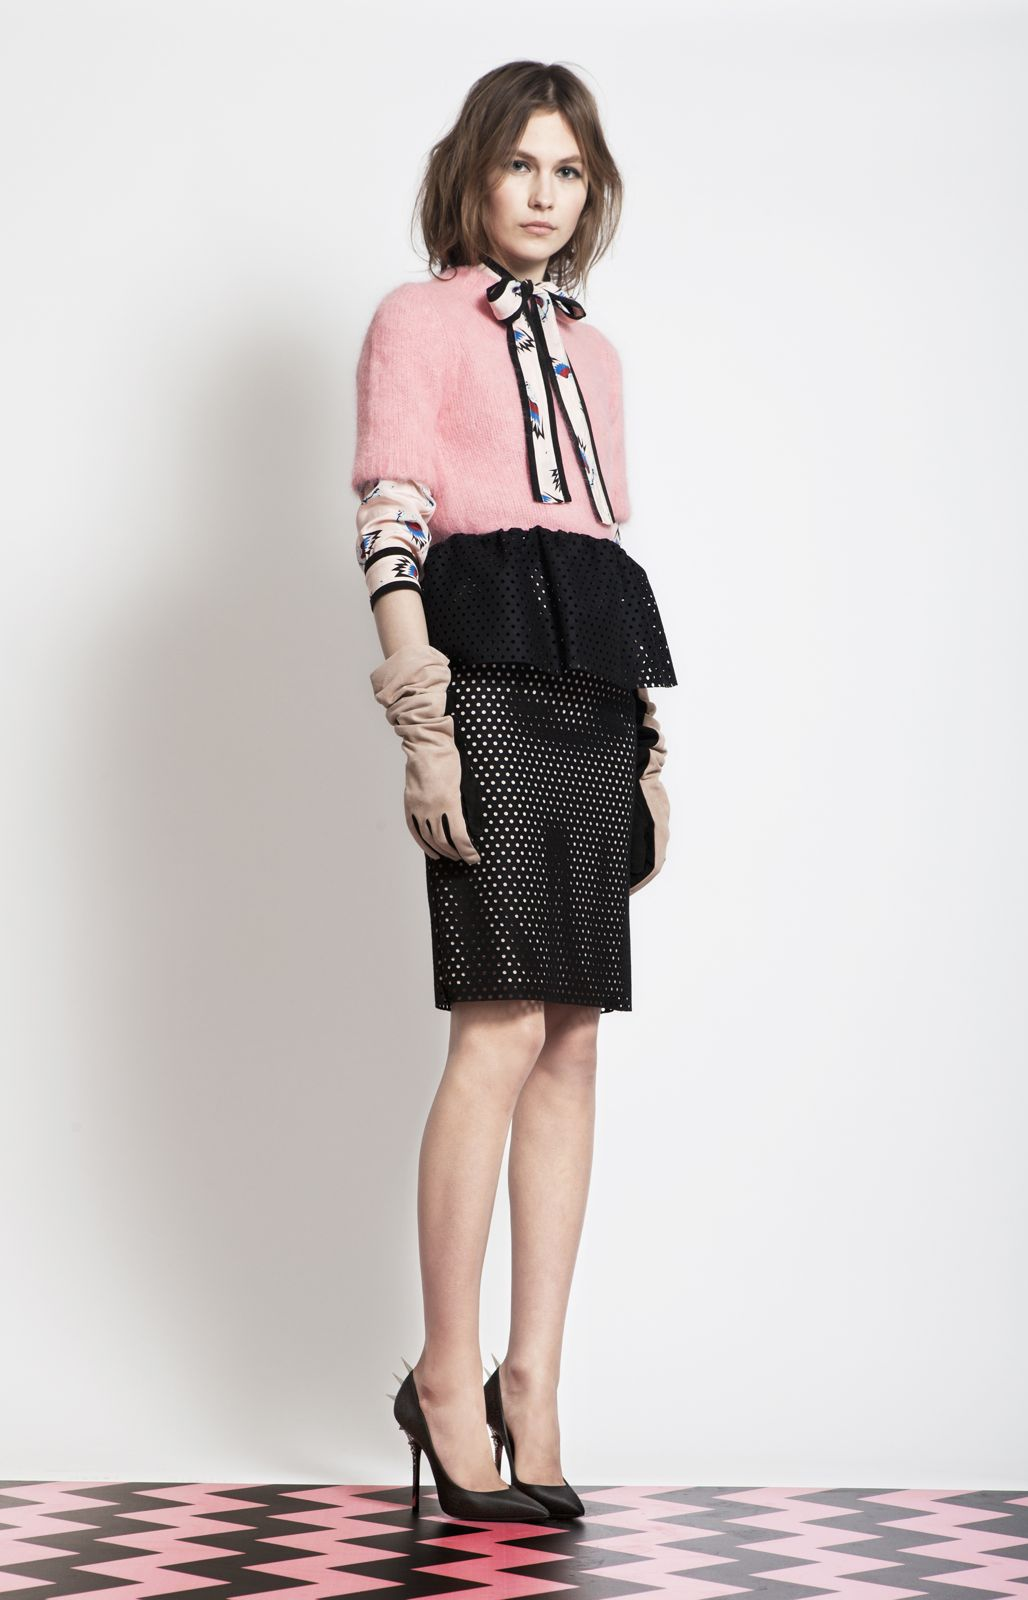 MSGM Woman Pre-Fall Winter 2012-13 Collection